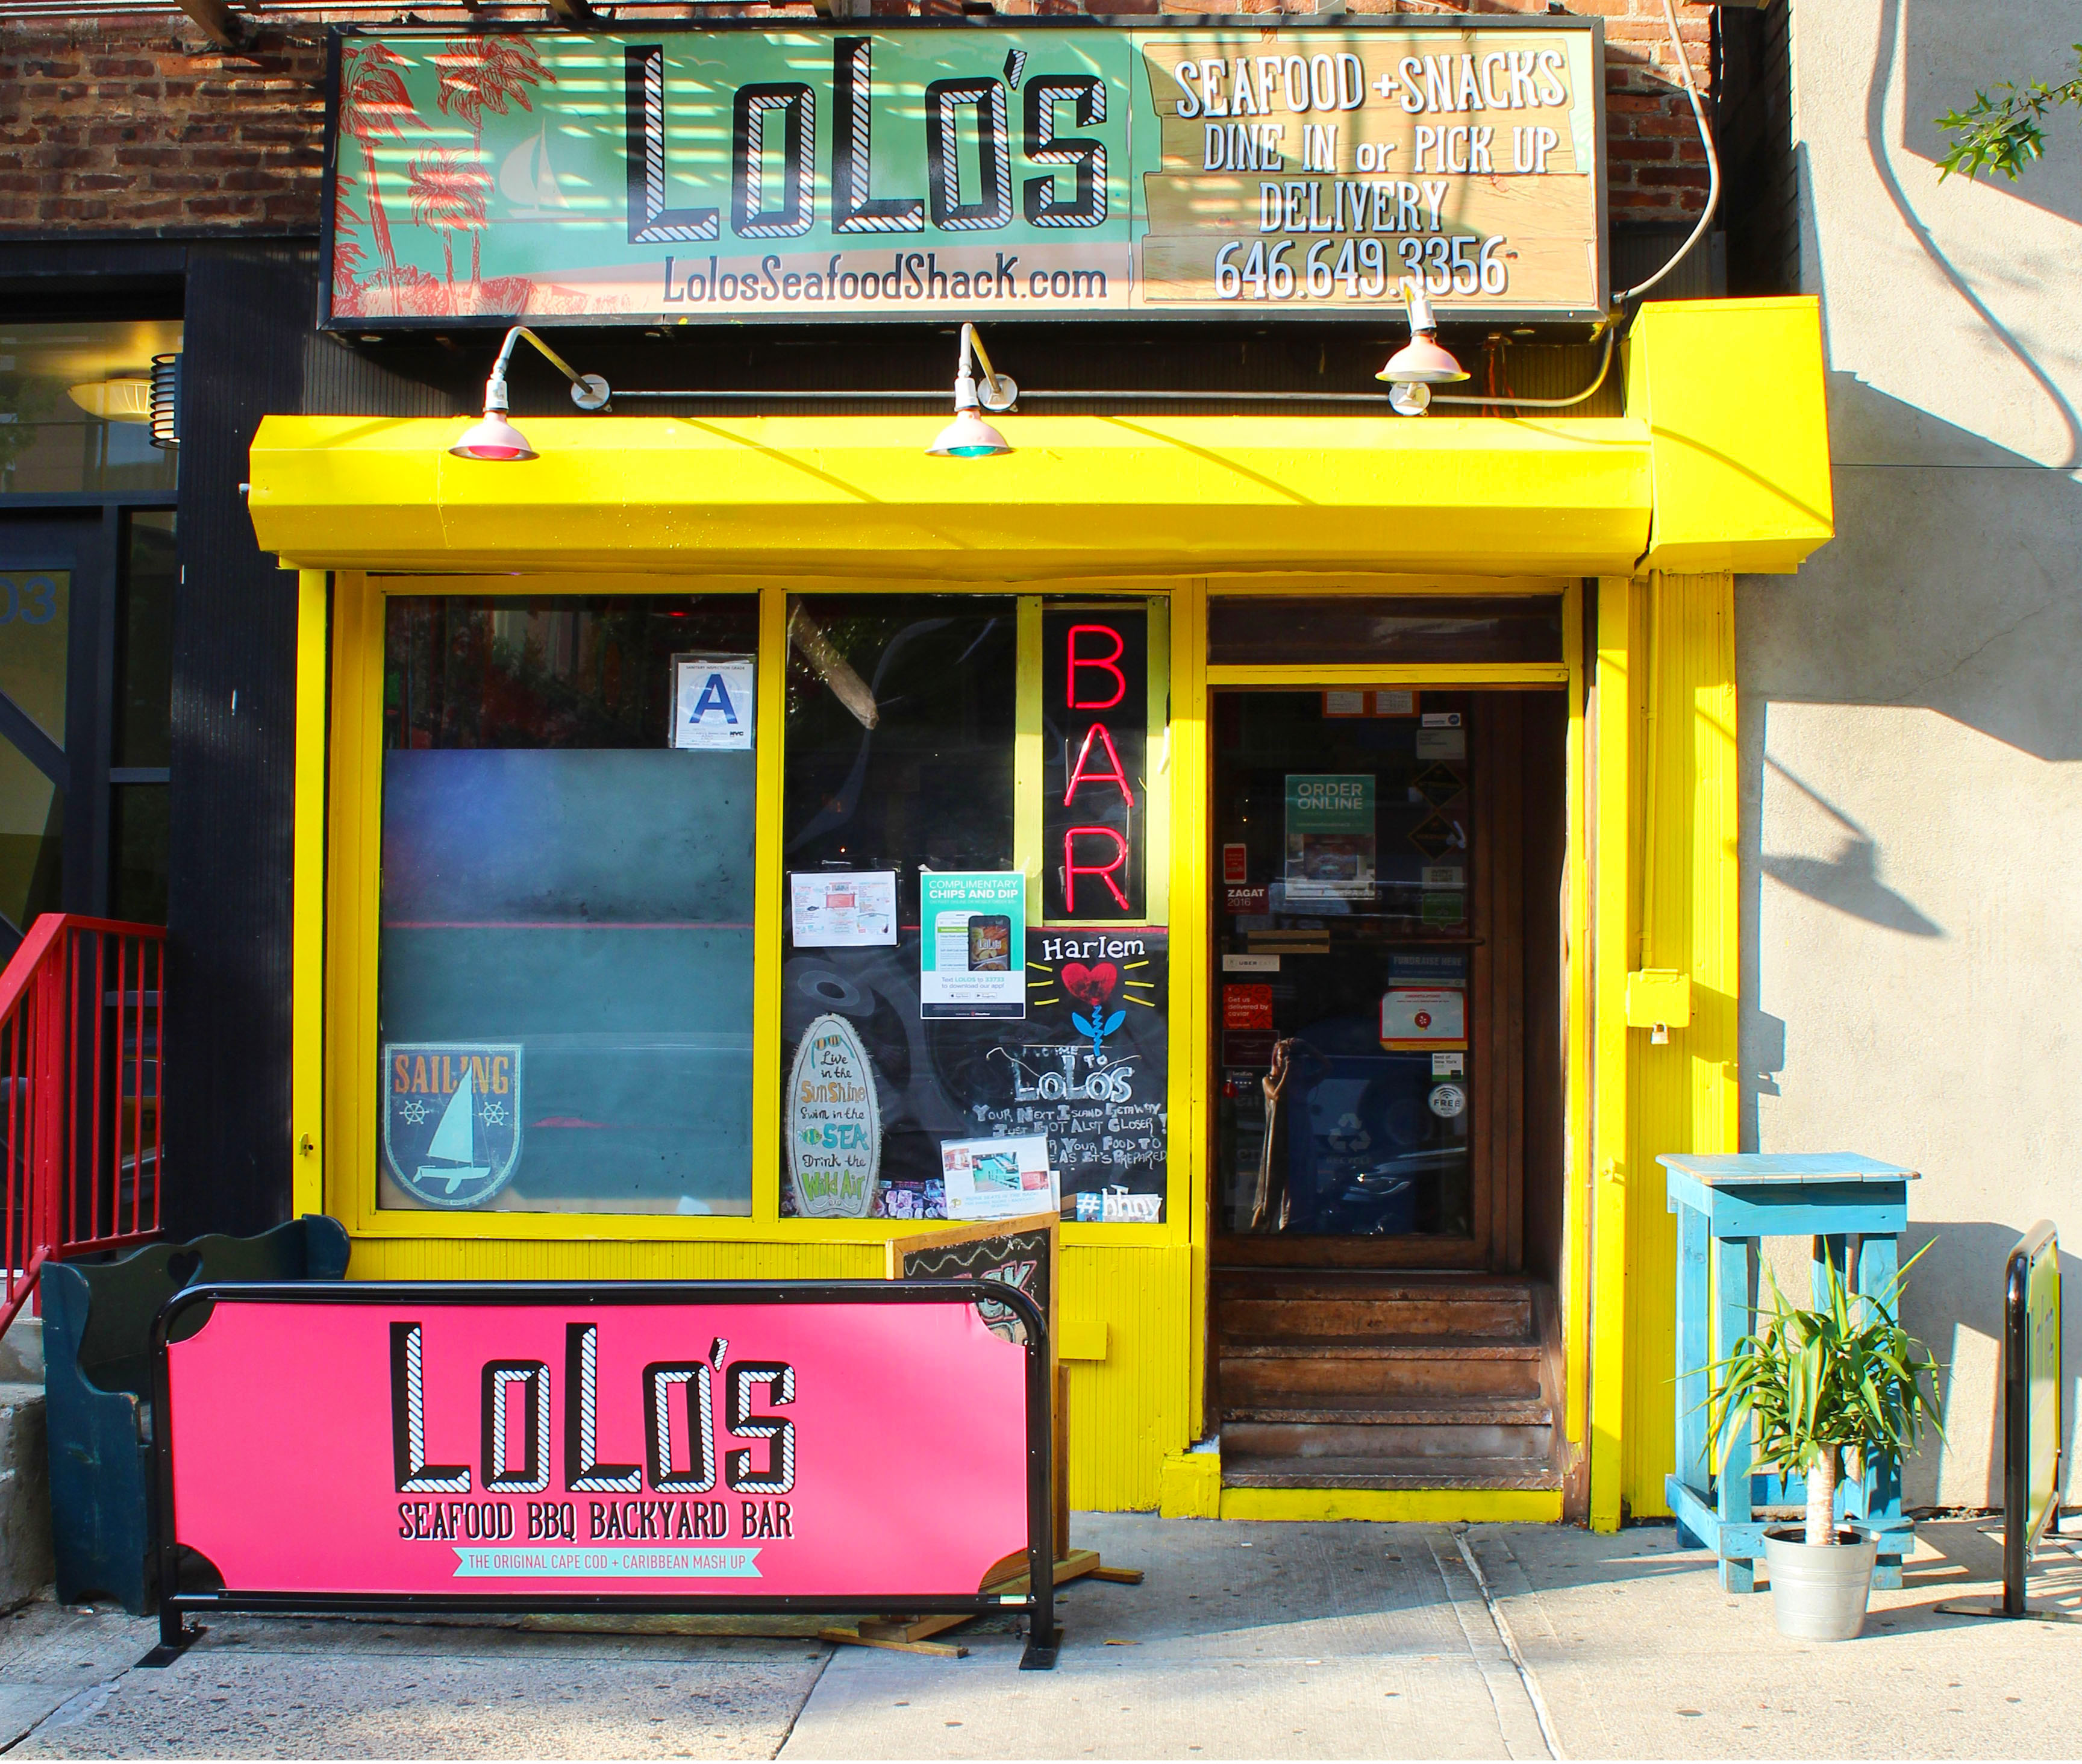 The colorful, pink and yellow storefront of a restaurant advertises takeout and delivery services